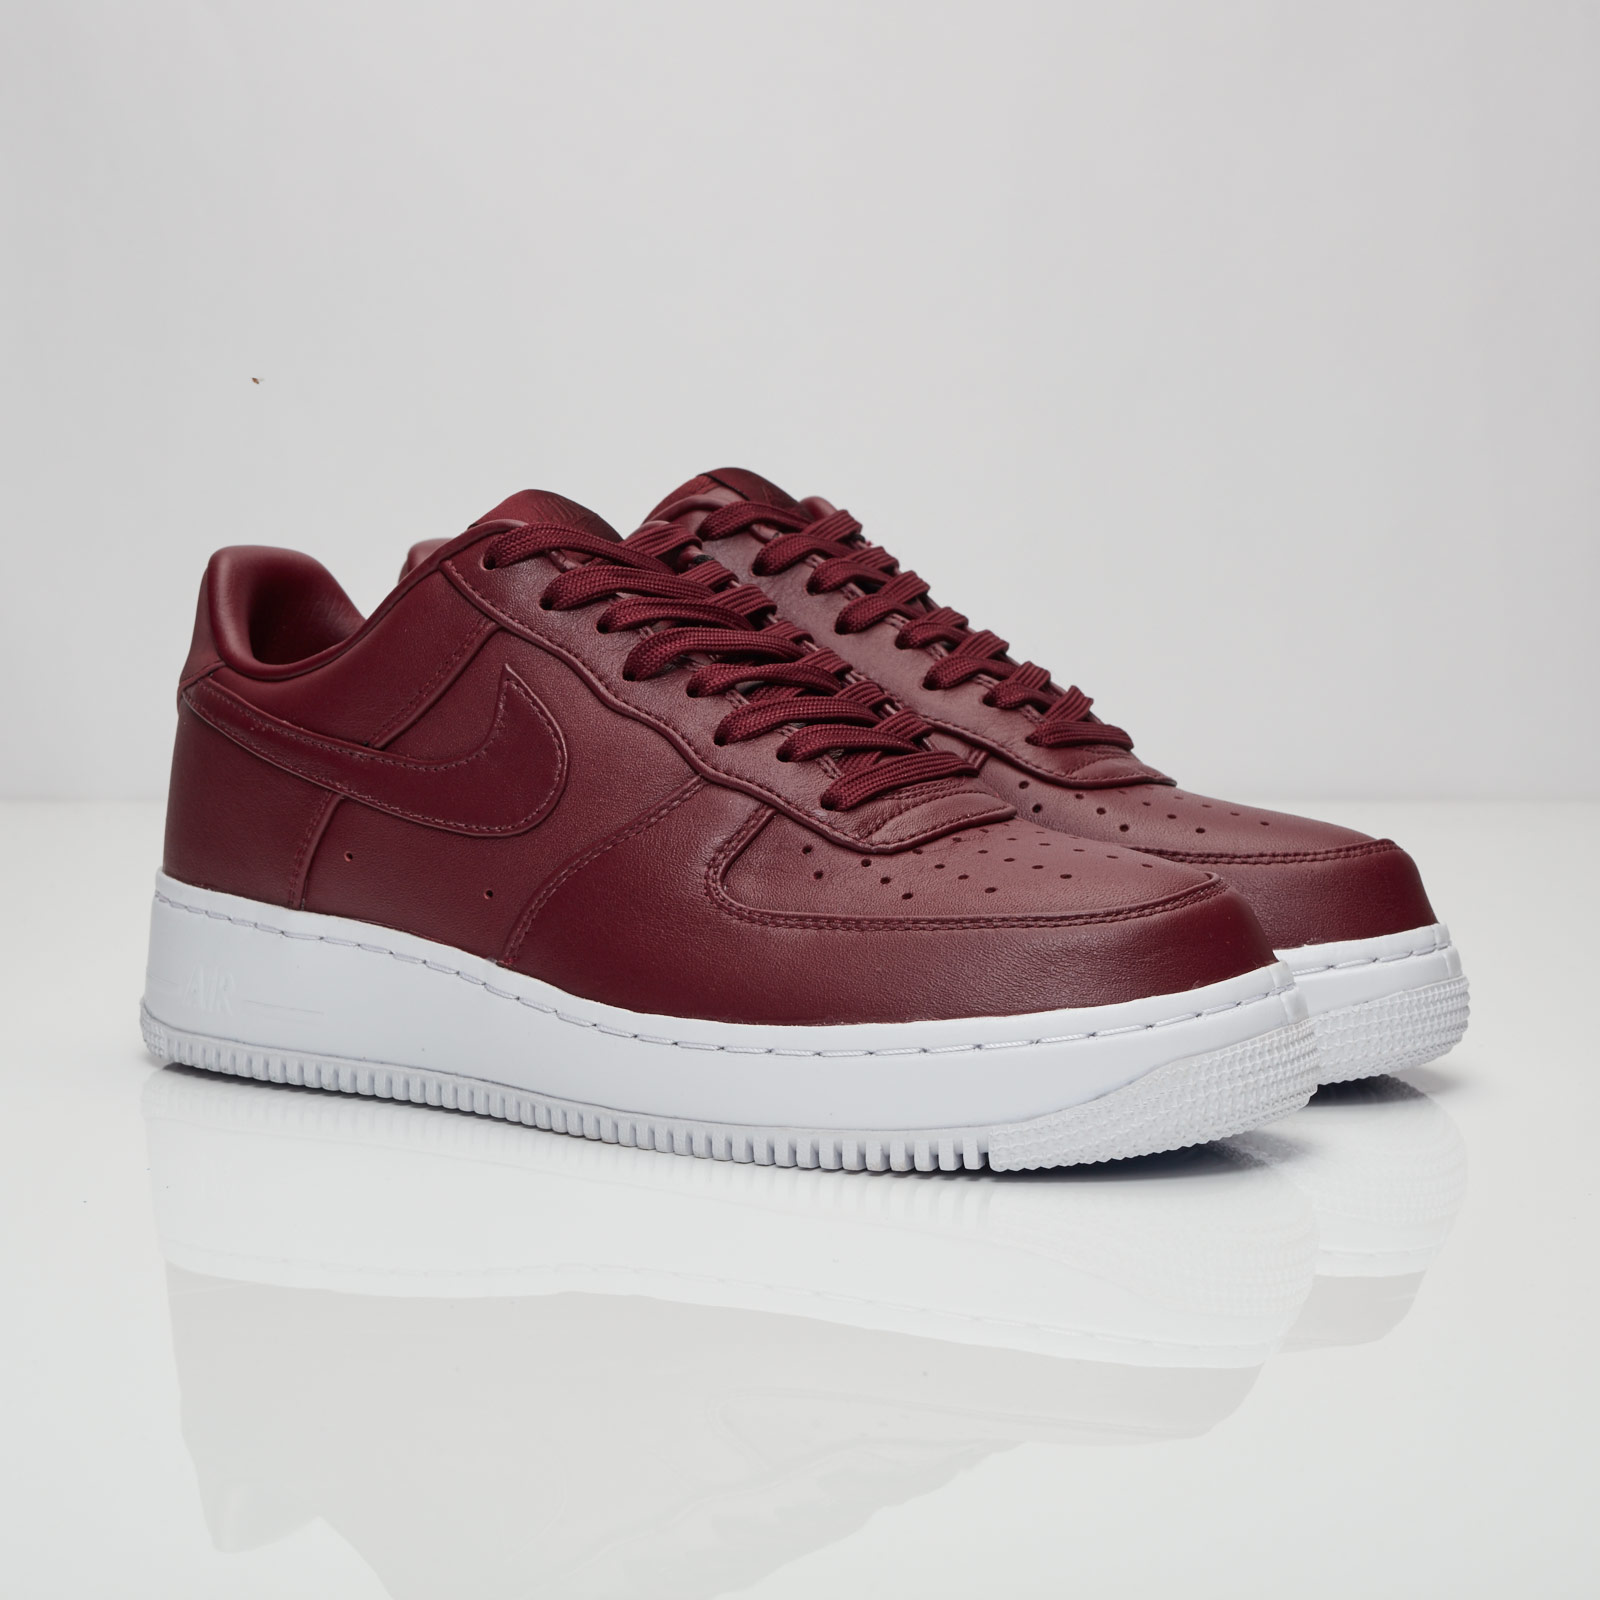 Nikelab Air Force 1 Low 555106 661 Night MaroonNight Maroon